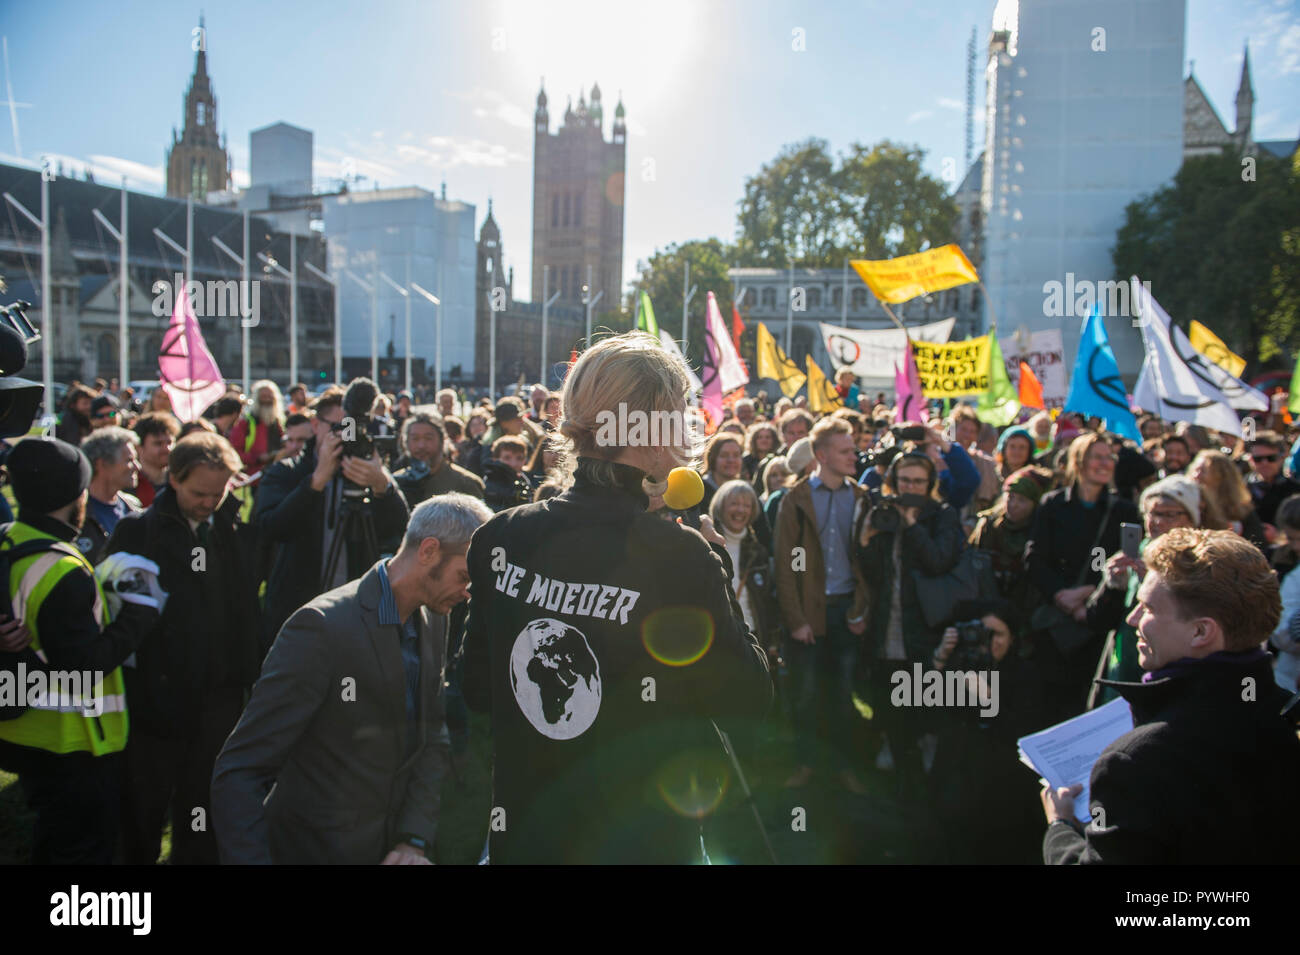 Parliament Square, London, UK. 31 October, 2018. Extinction Rebellion, a new pressure group, is calling for civil disobedience in the UK in November to draw attention to the climate change emergency facing the planet. They call a Declaration of Rebellion at Parliament Square on 31 October 2018. Credit: Malcolm Park/Alamy Live News. Stock Photo